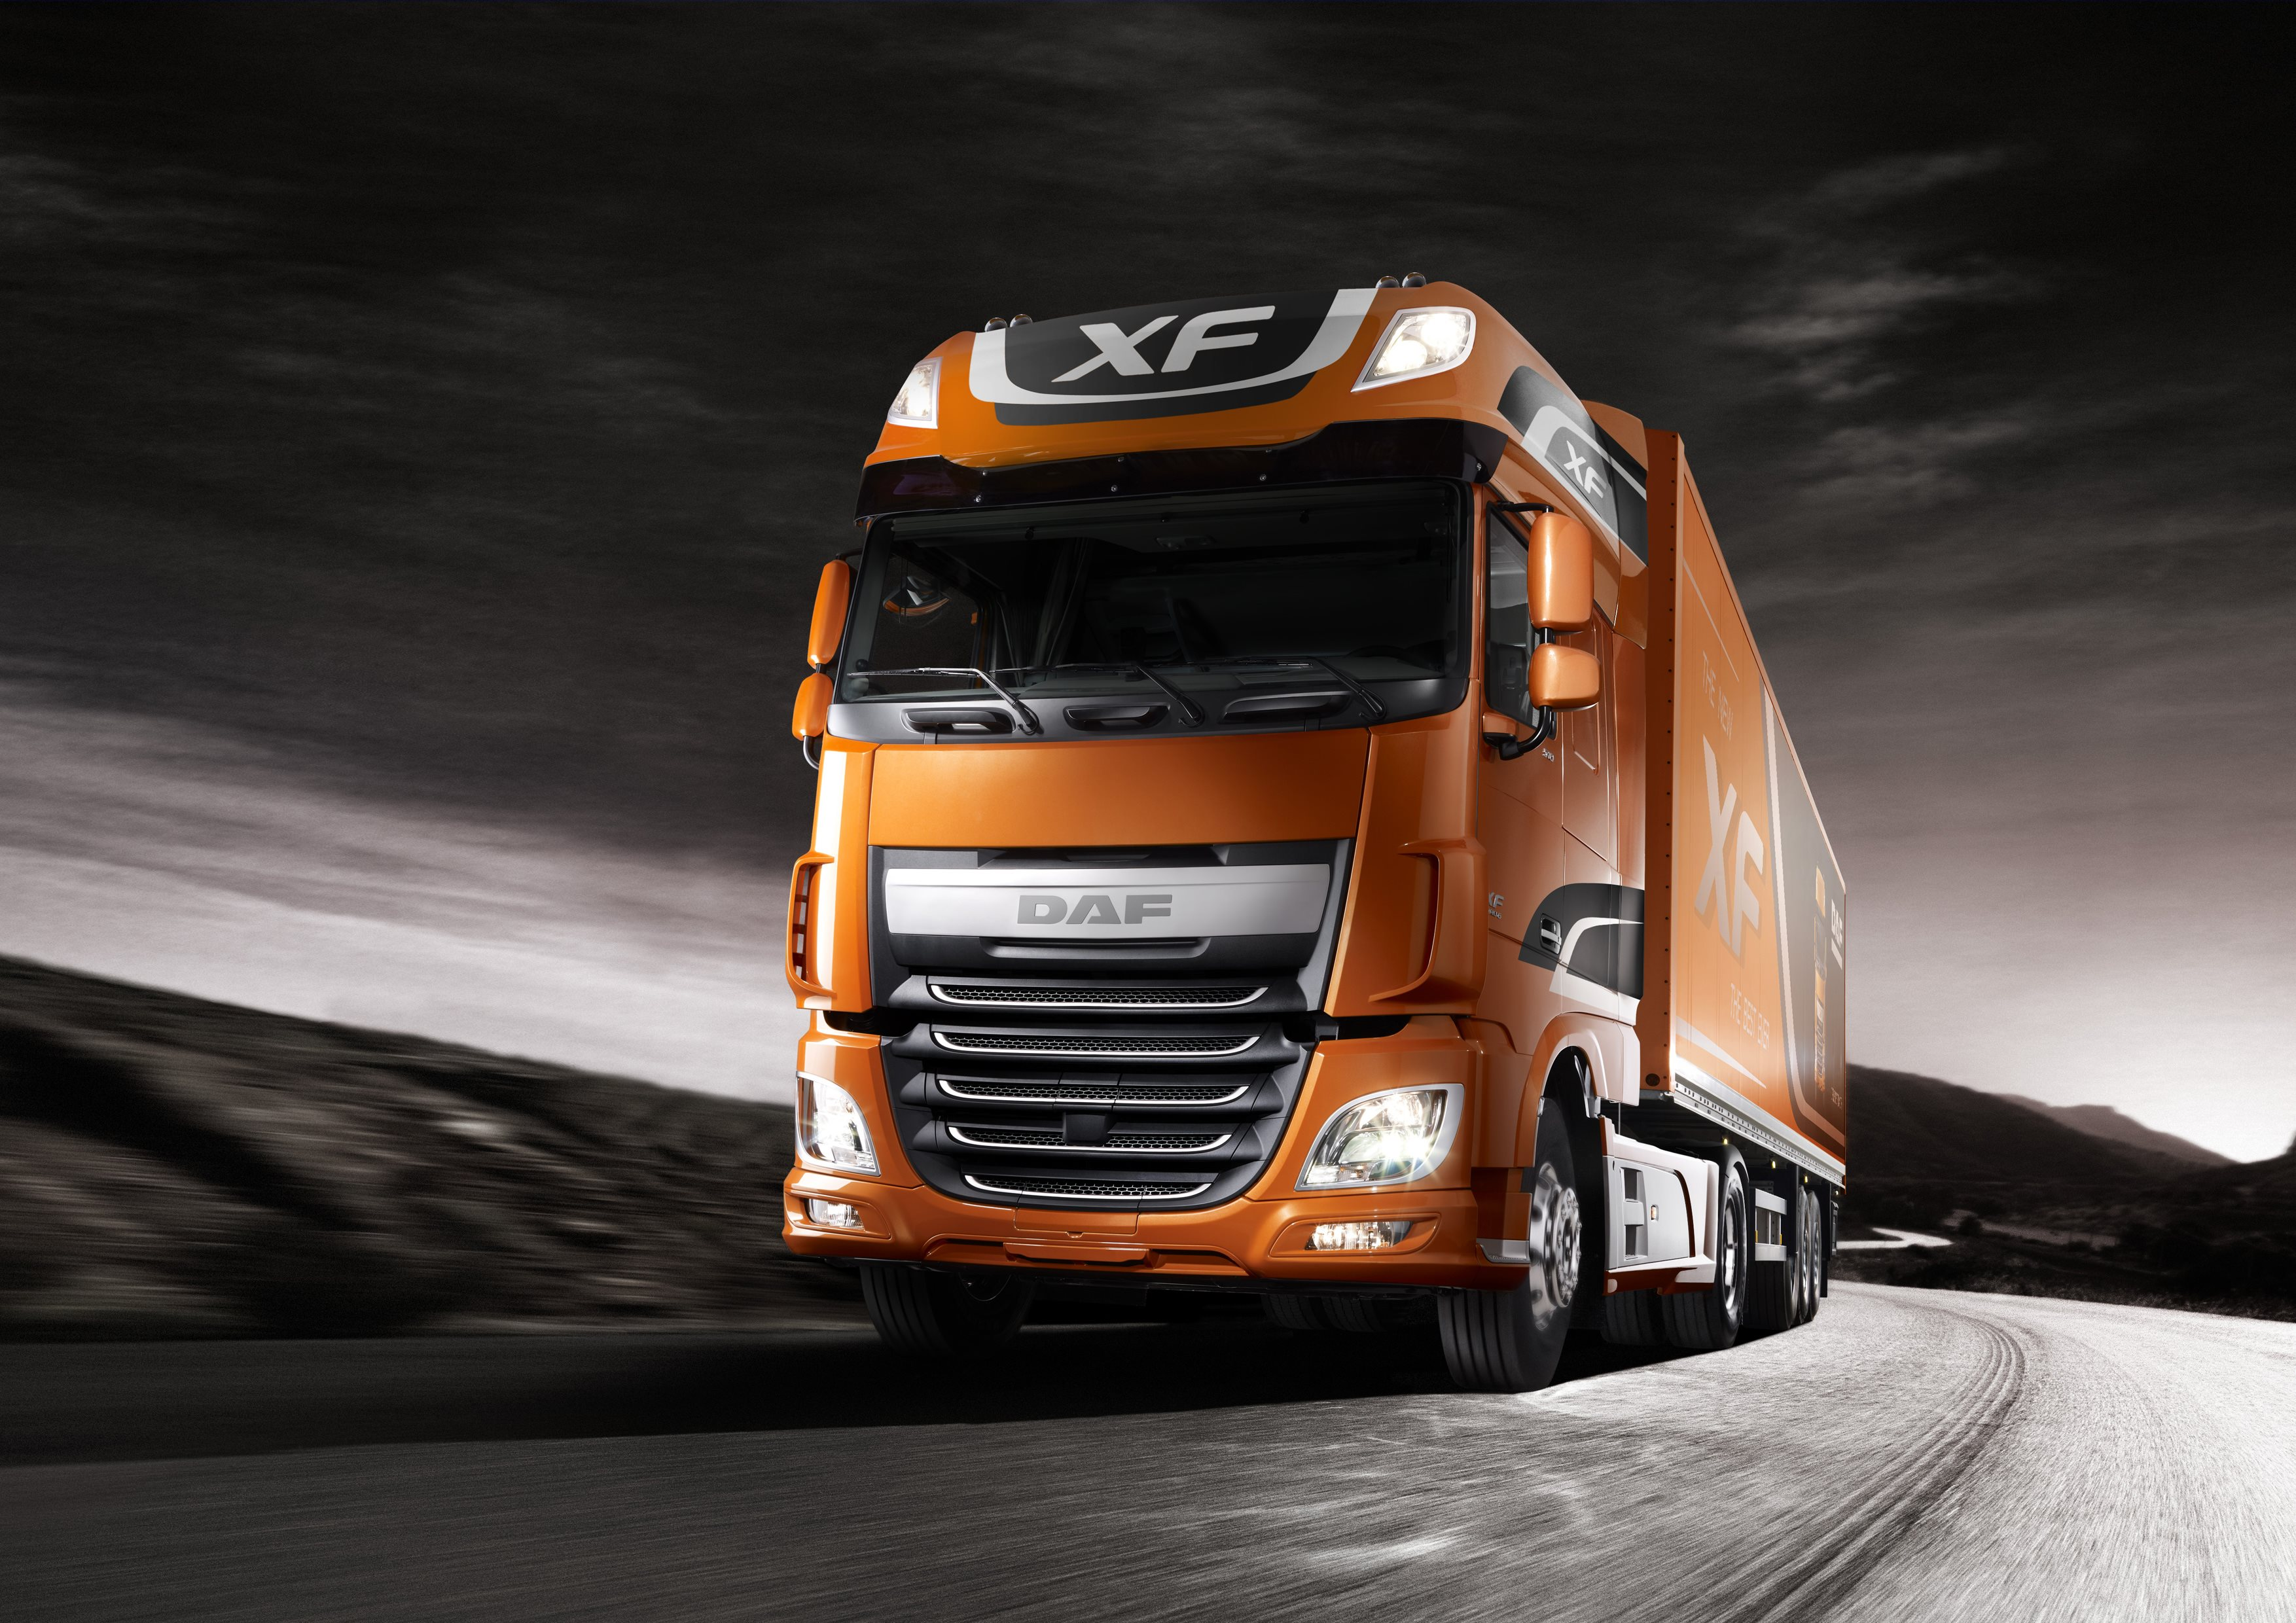 DAF desktop and mobile backgrounds  DAF Corporate